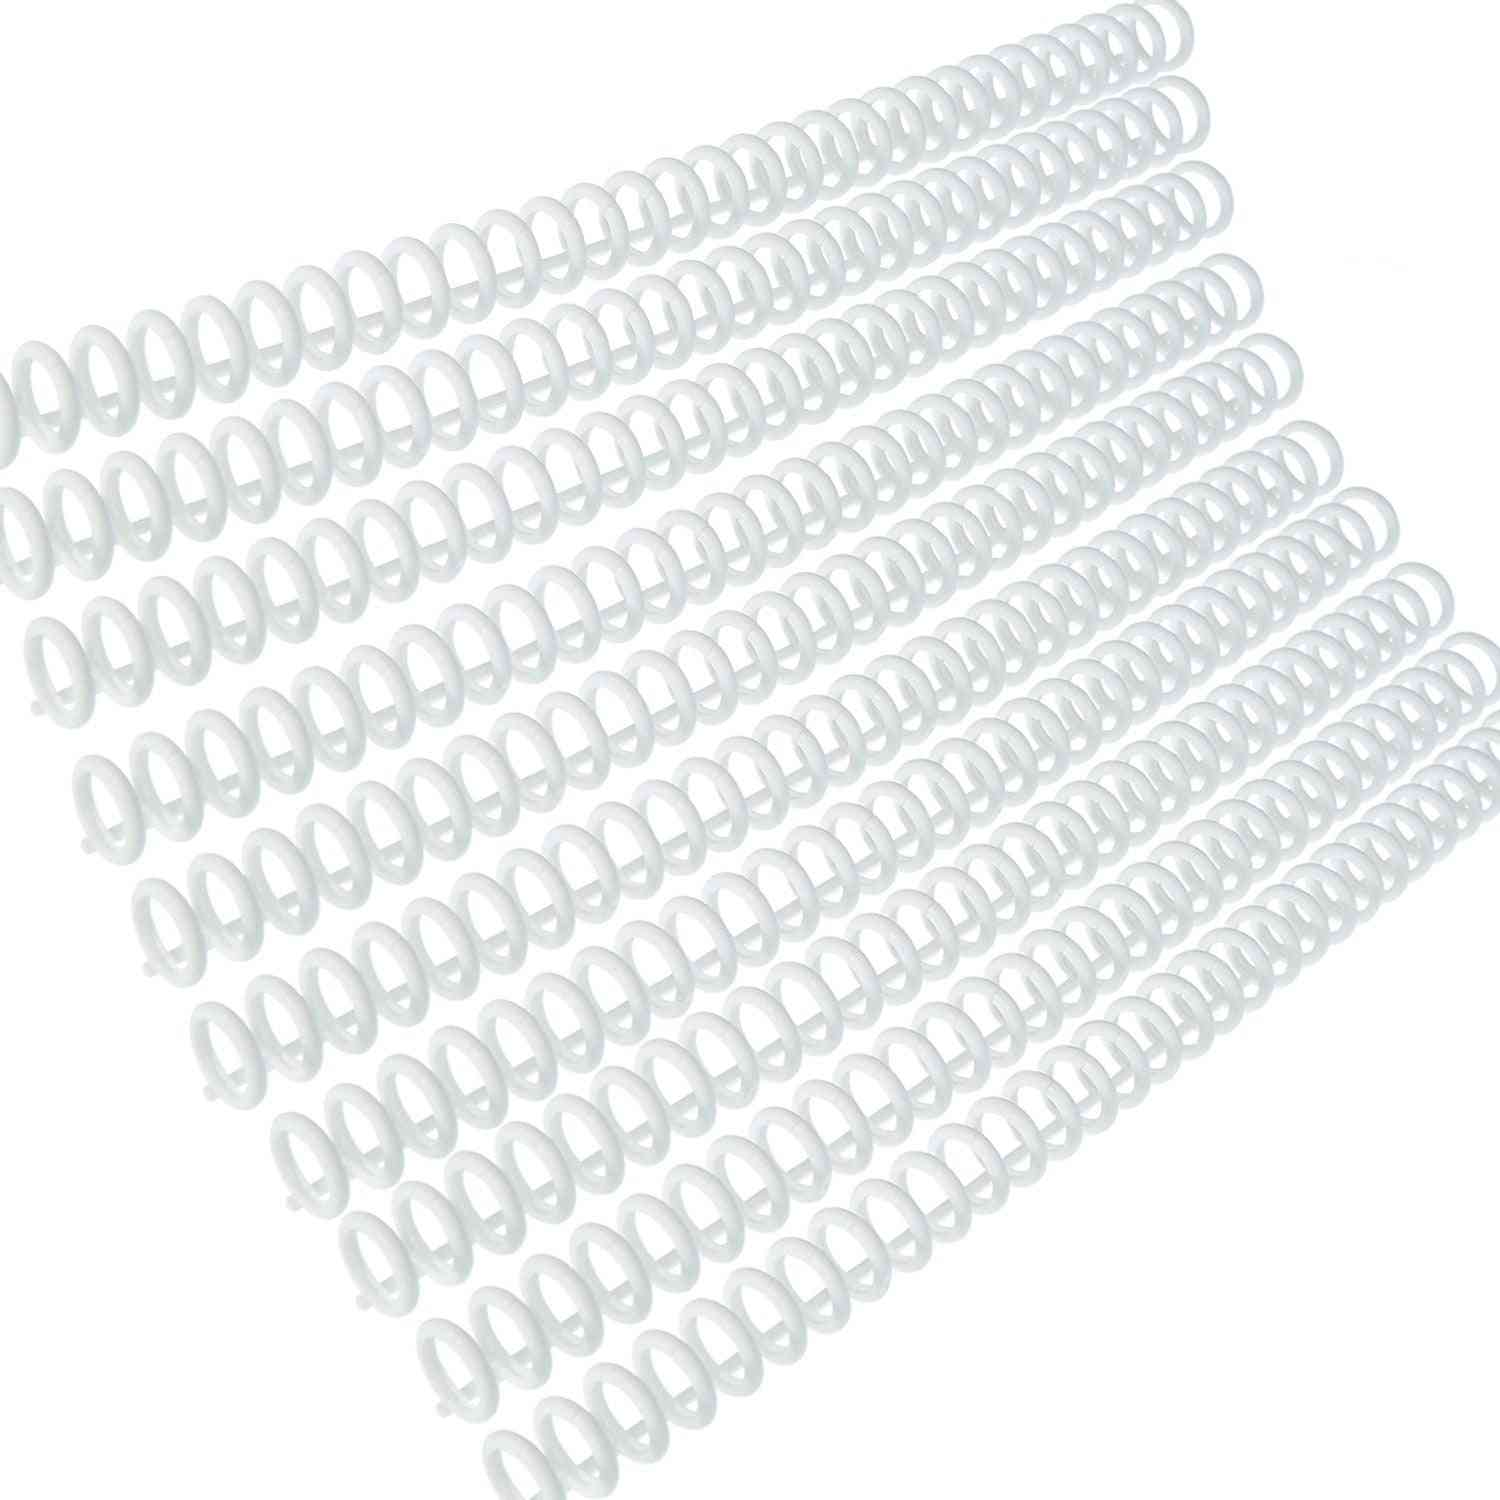 Plastic Hole Loose Leaf Binders Ring Spines Combs Sheets Capacity Notebook Album